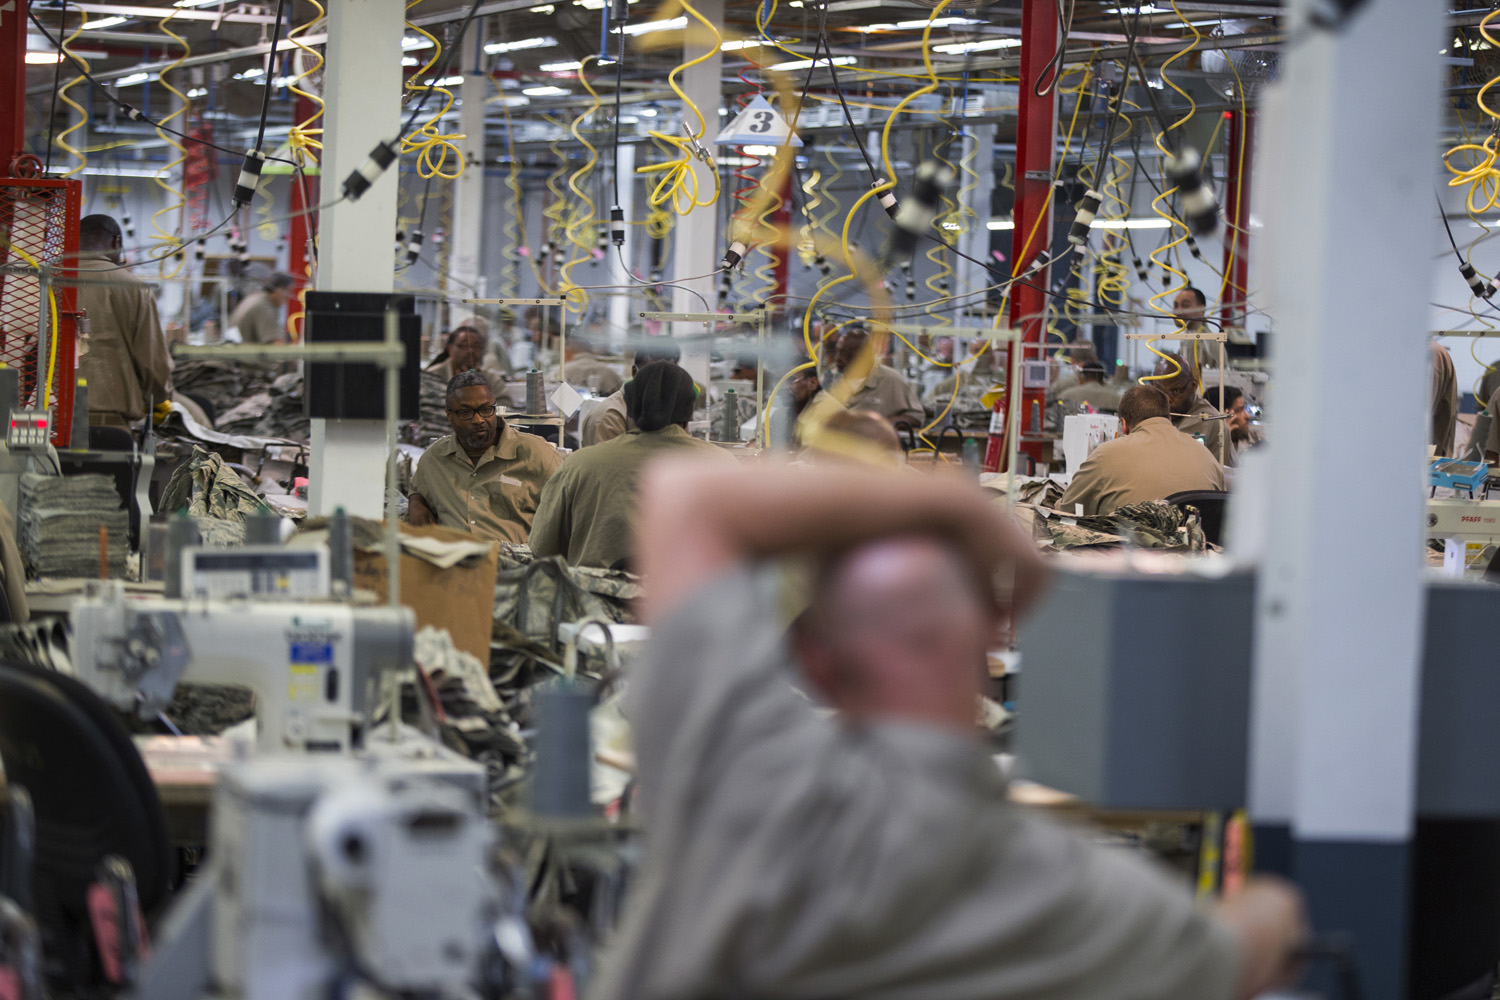 Inmates are seen at a factory in a federal prison in Alabama in April. Prisoners have been staging coordinated protests in several state prisons since earlier this month over a range of grievances, including pay raises and living conditions. )Evan Vucci/AP)